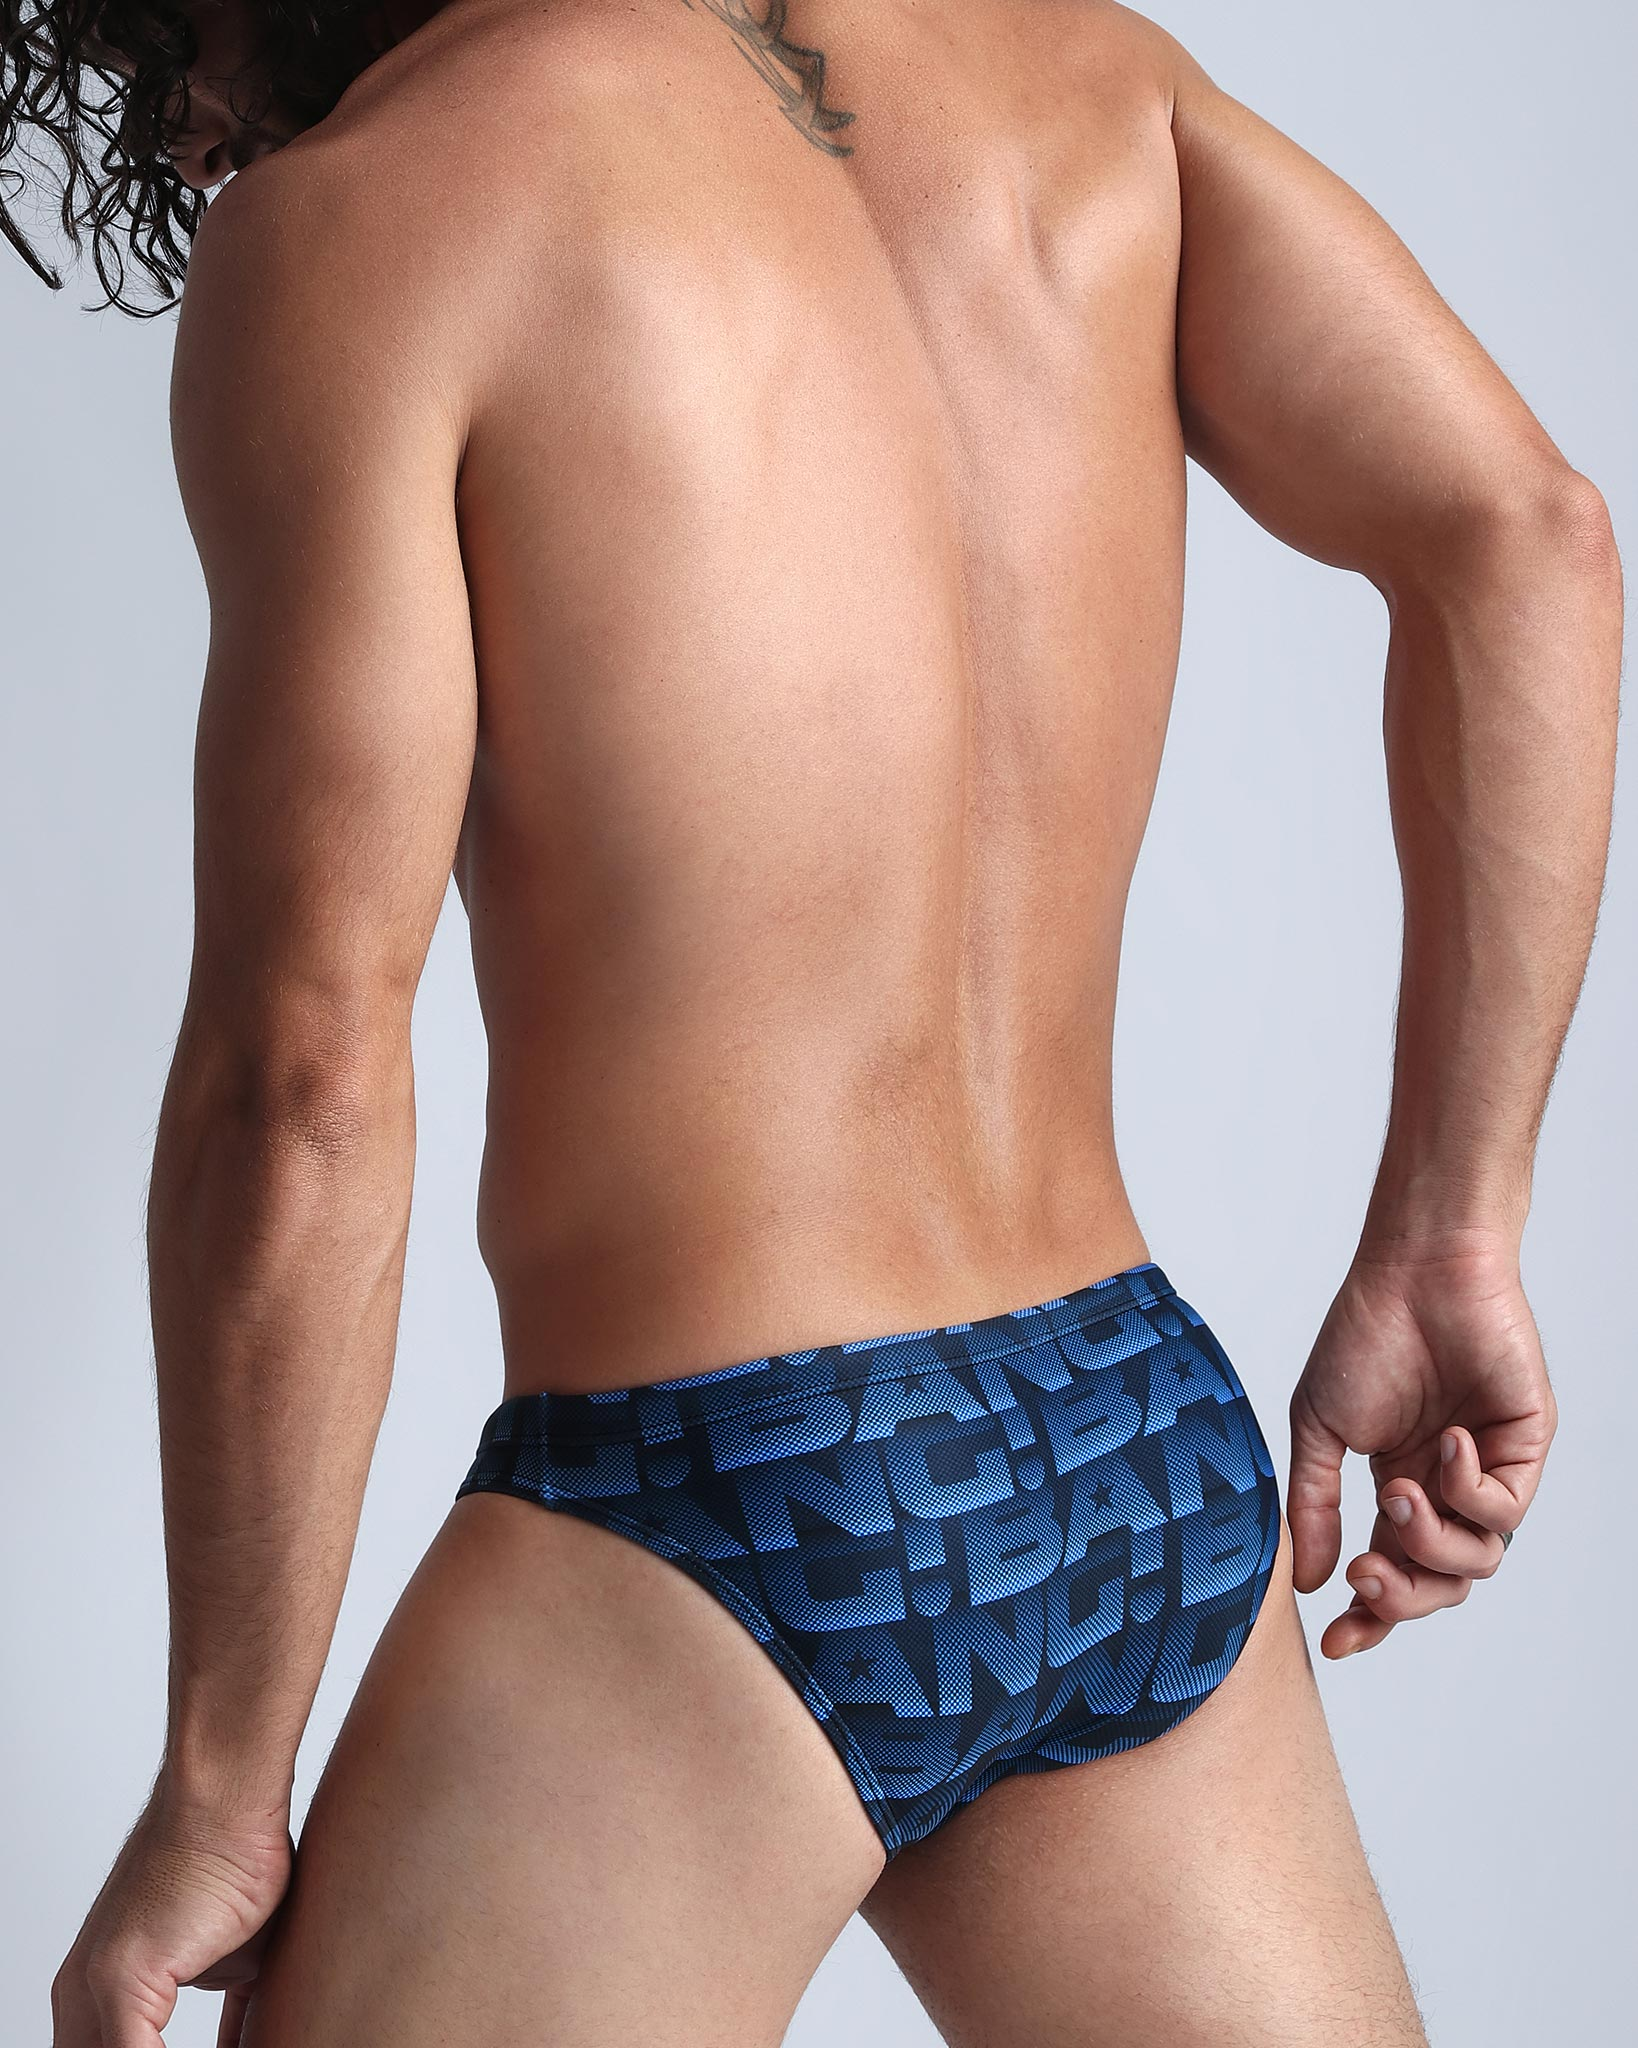 Escapade Swim Mini Brief Bang Clothes Men Swimwear Swimsuits back view